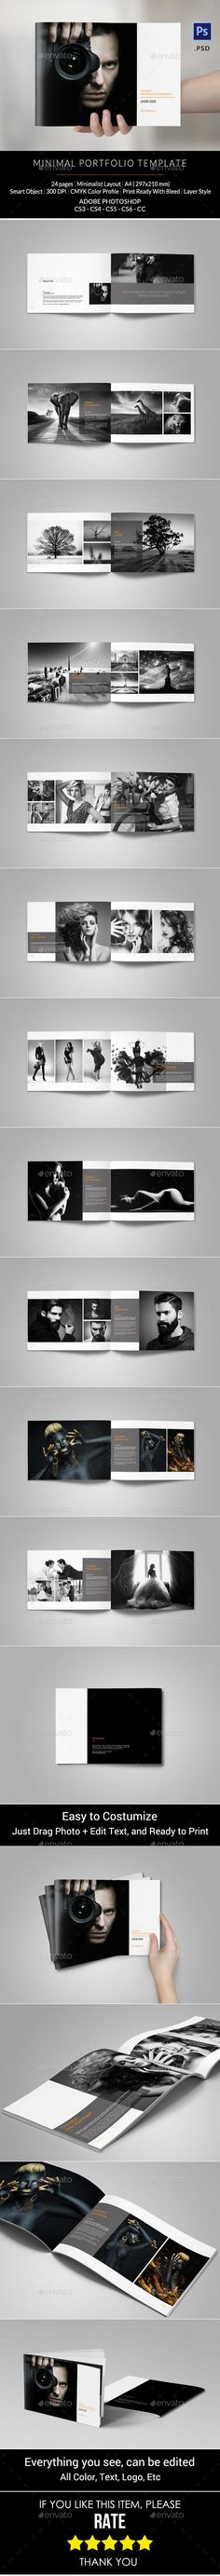 Flat Business Card #Template (Free Download)